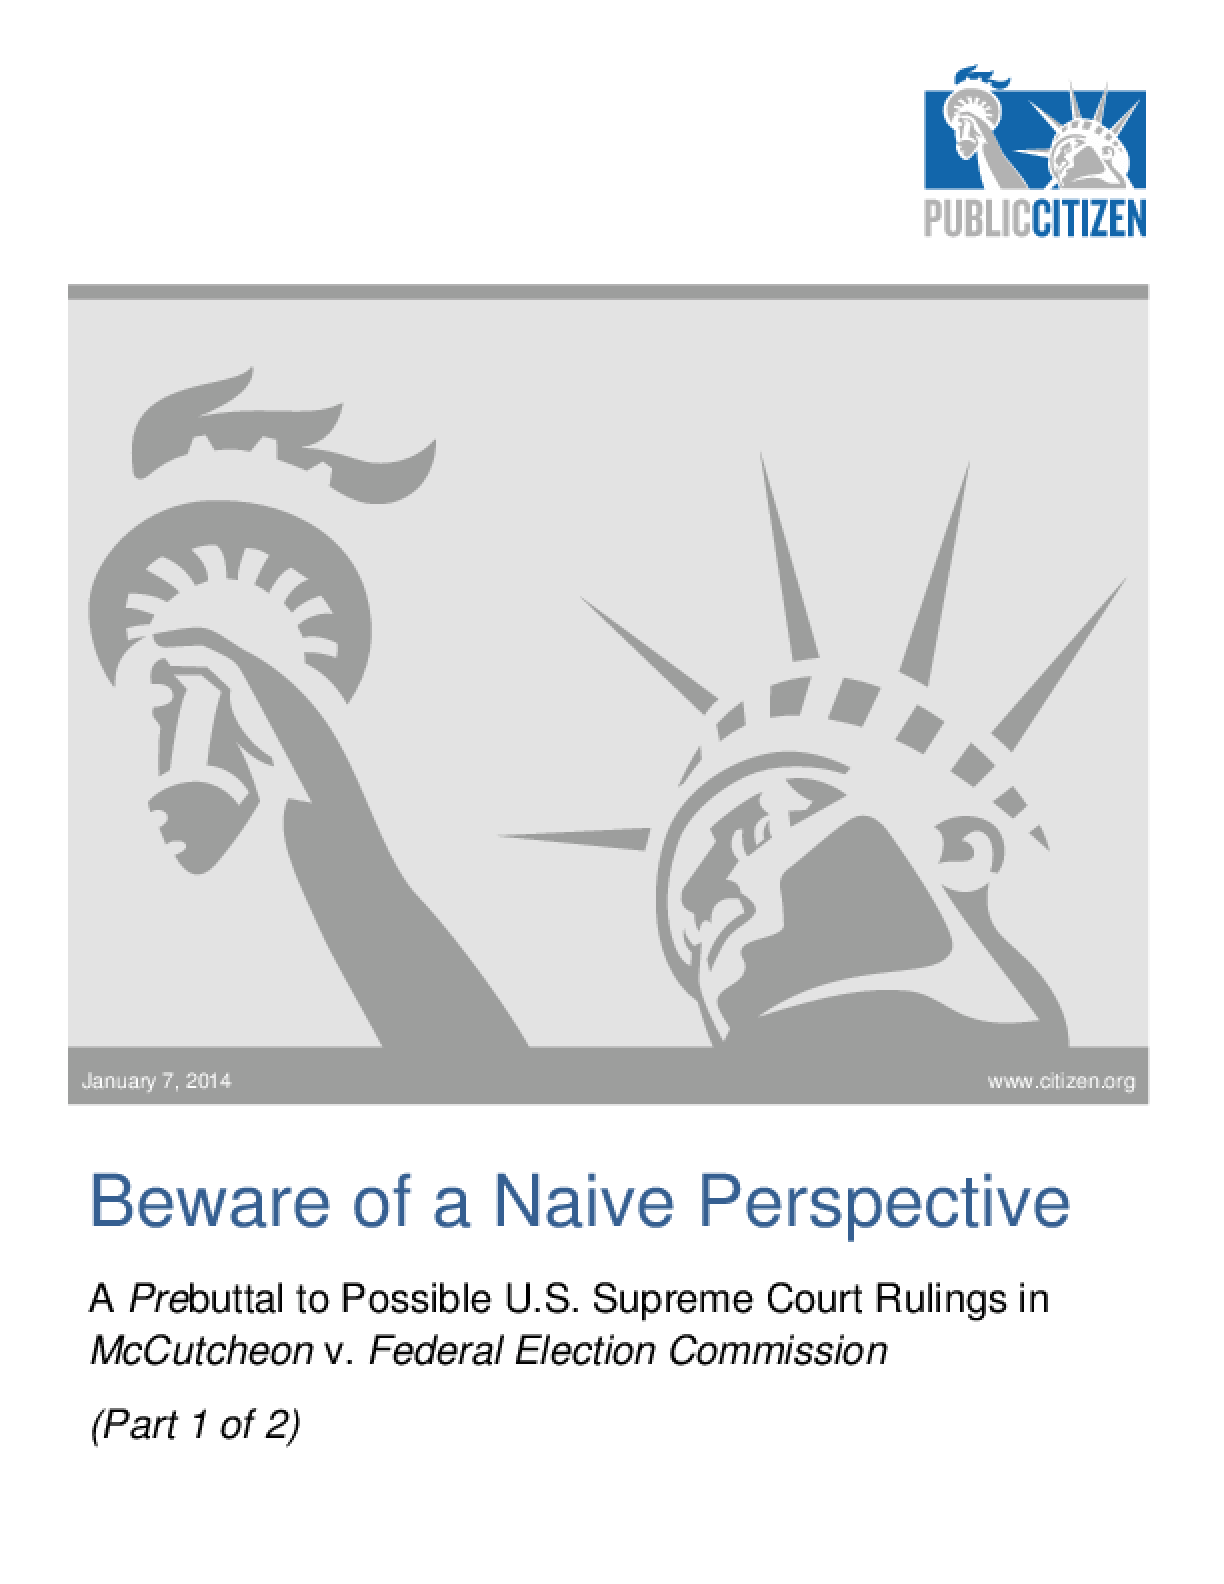 Beware of a Naive Perspective: A Prebuttal to Possible U.S. Supreme Court Rulings in McCutcheon v. Federal Election Commission (Part 1)